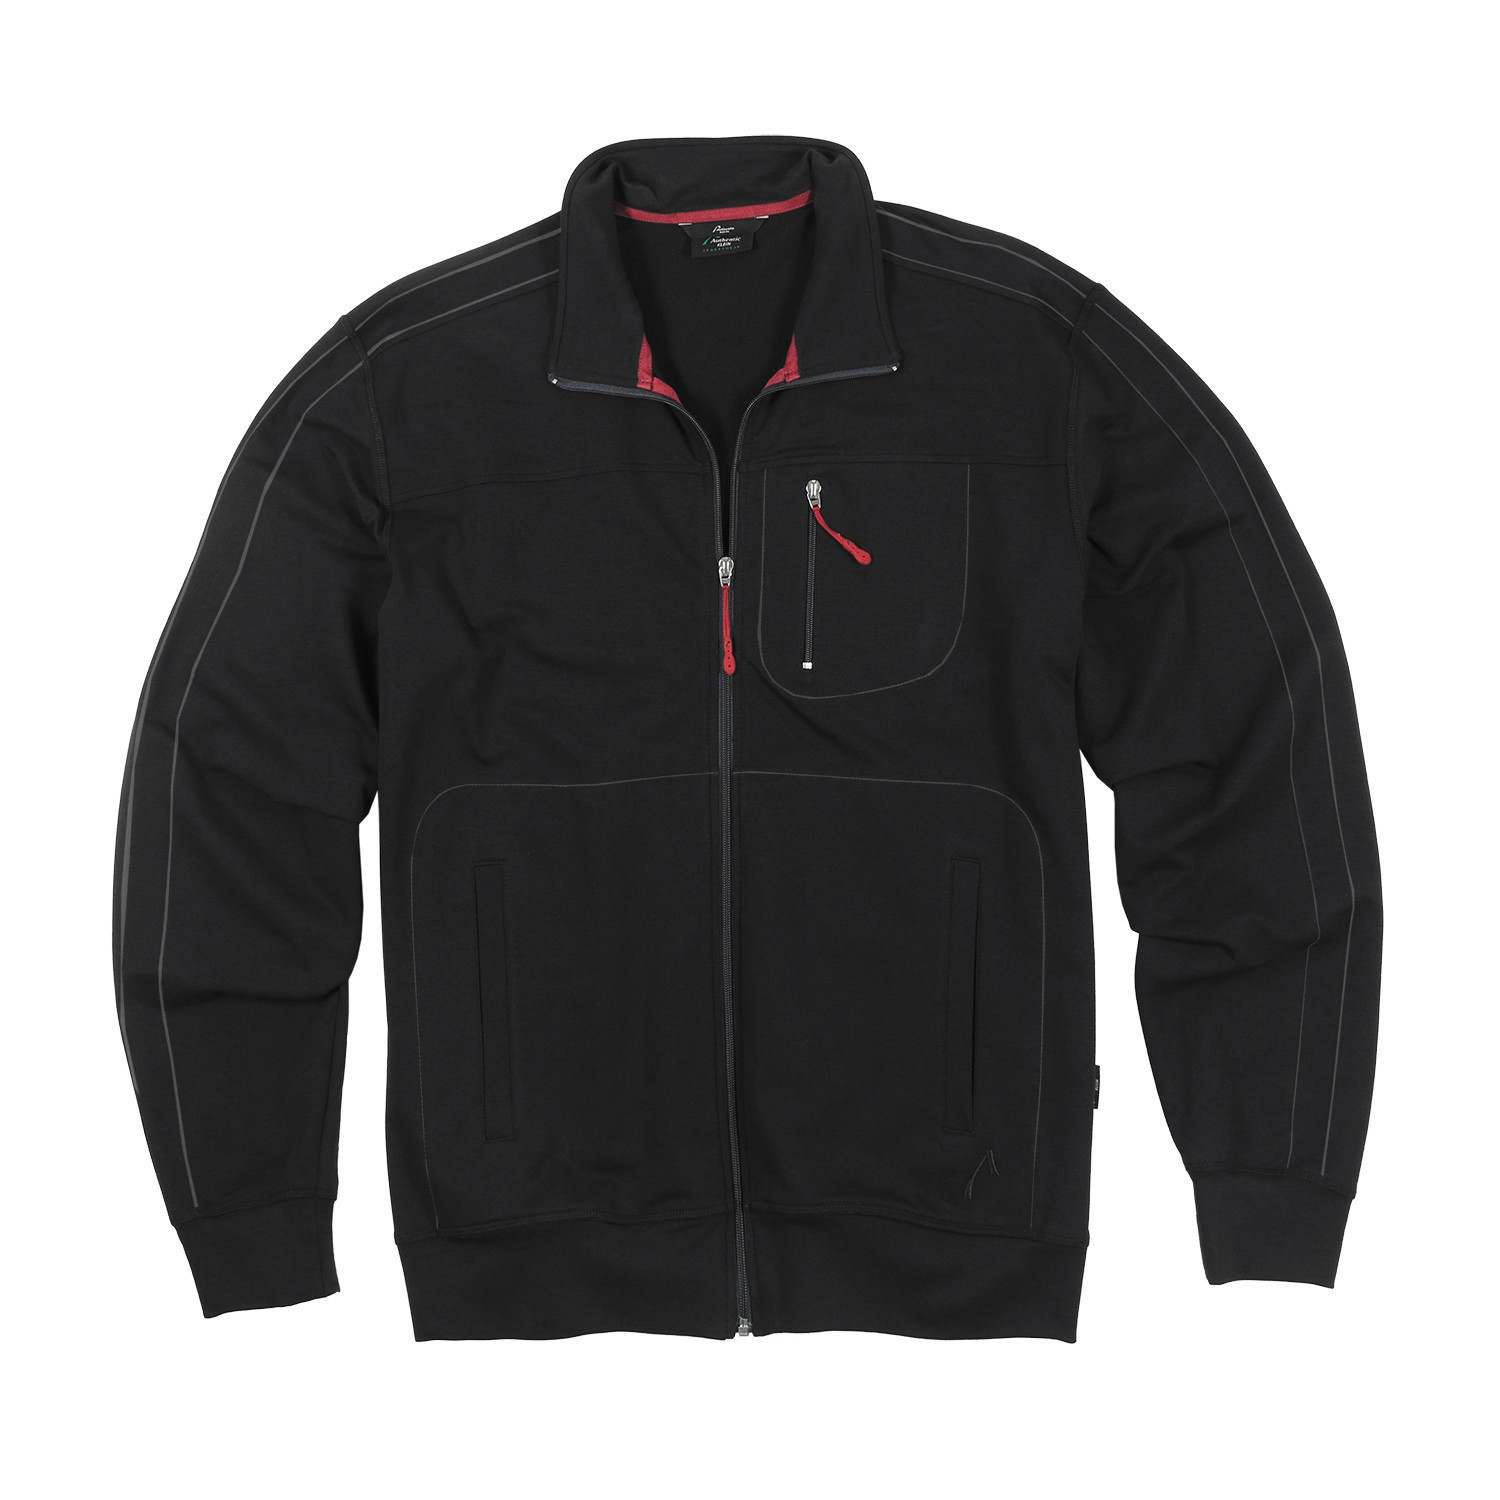 Detail Image to long size sports and leisure jacket in black, plus sizes by AUTHENTIC KLEIN